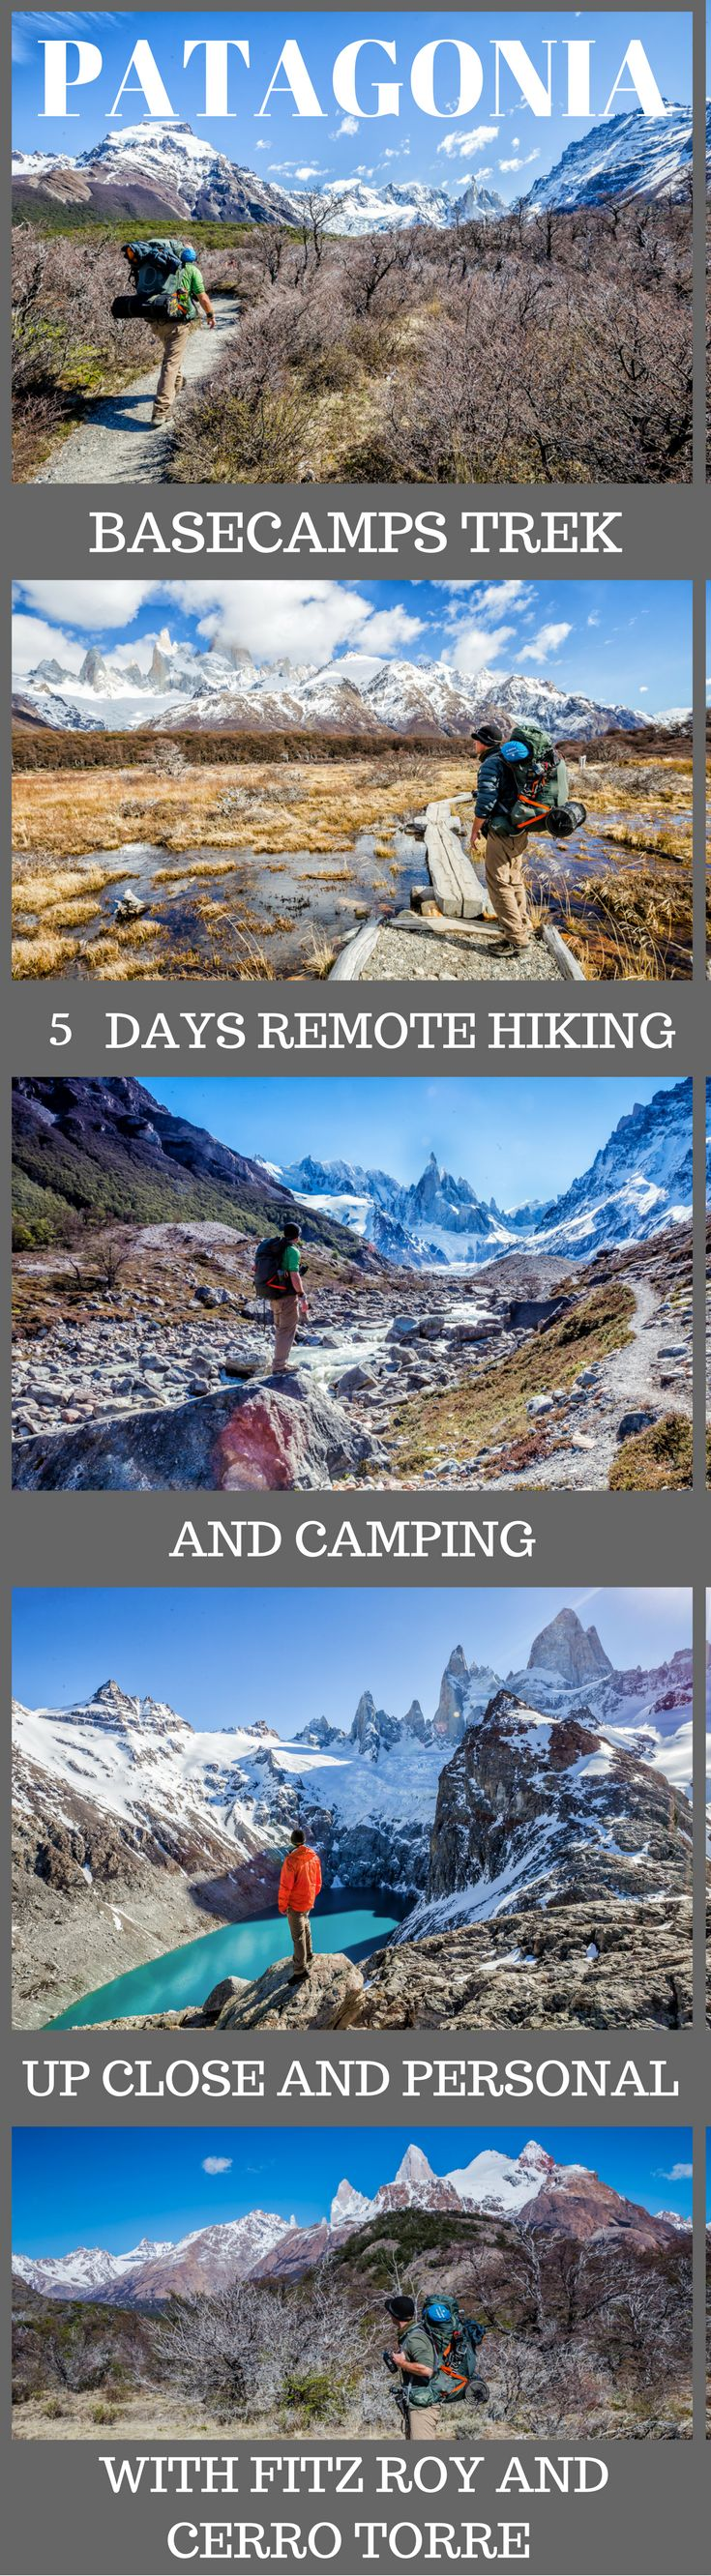 5 Days of Hiking in Patagonia – Basecamps Trek. A world's top 100 travel adventure, up close and personal with Fitz Roy and Cerro Torre, in Argentina's Patagonia. Of course, we're not talking about day hikes either. We're talking about strapping on your backpack, carrying all your own supplies and heading off on the trails into the backcountry. Click to read more #AdventureTravel #Patagonia #Travel #Argetina